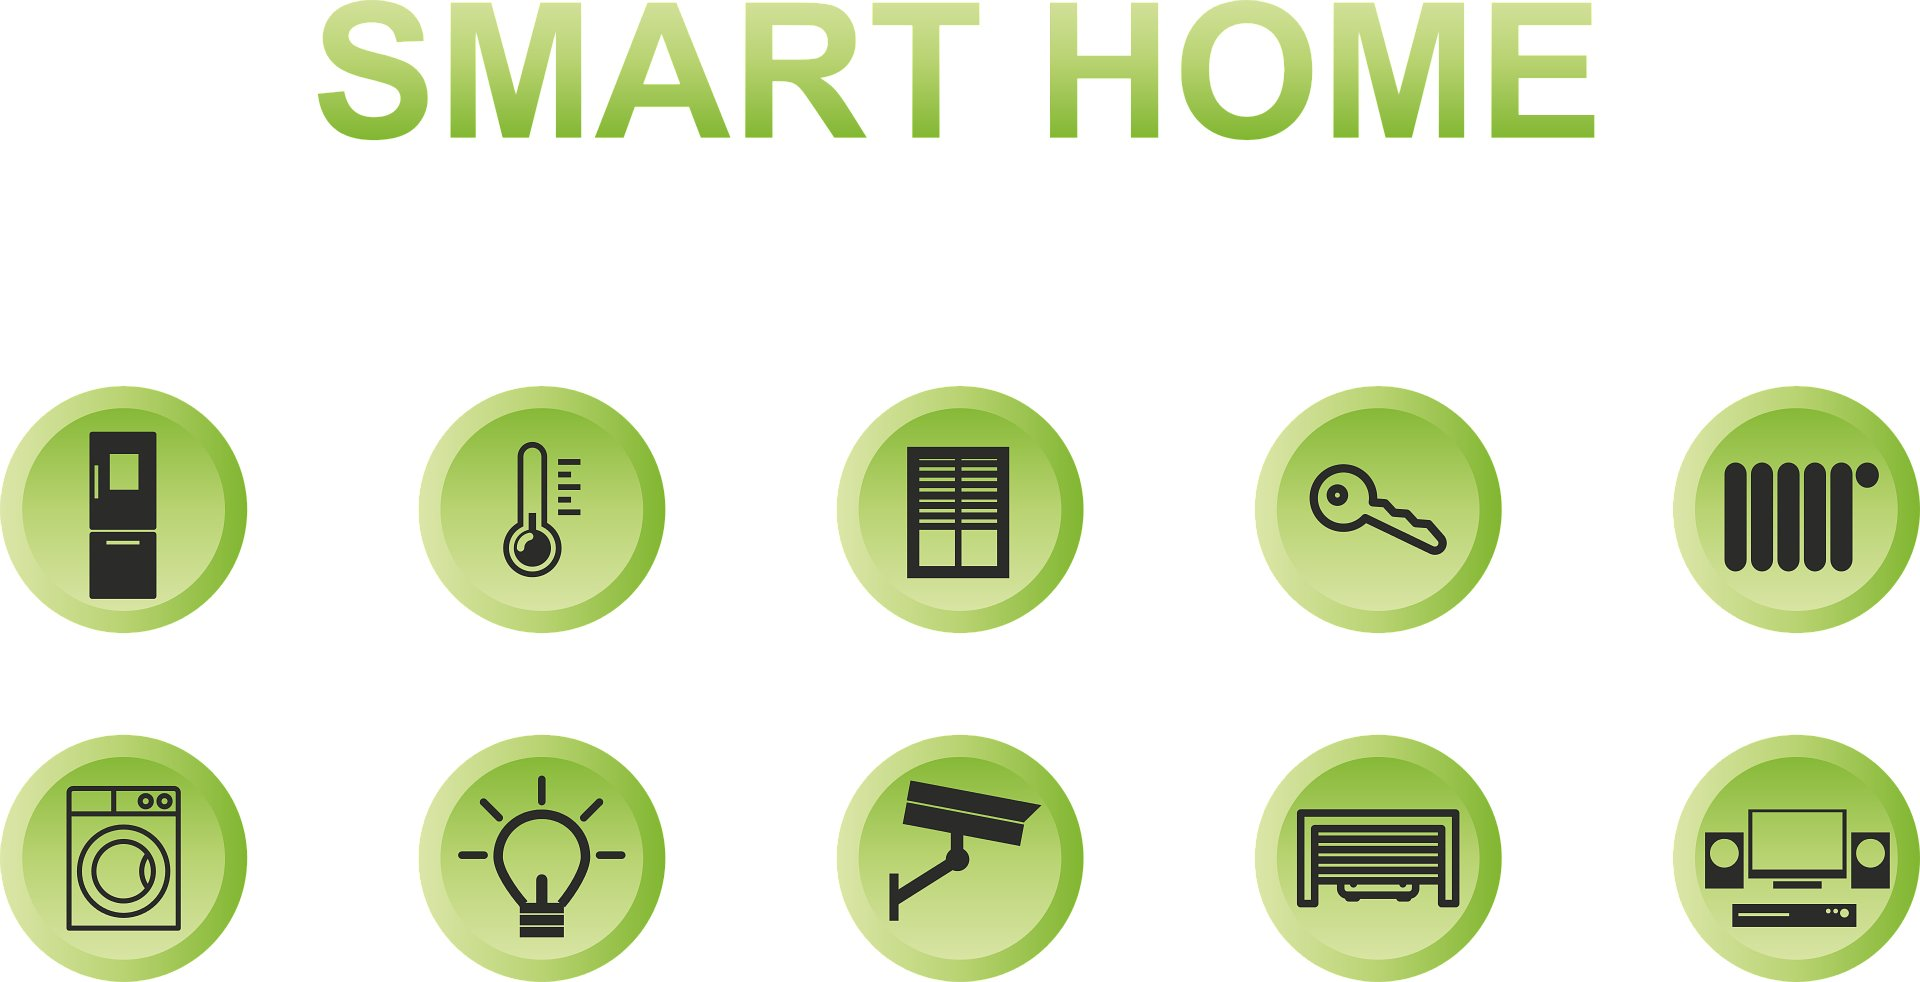 techxplore.com - Science X staff - What's next for smart homes: An 'Internet of Ears?